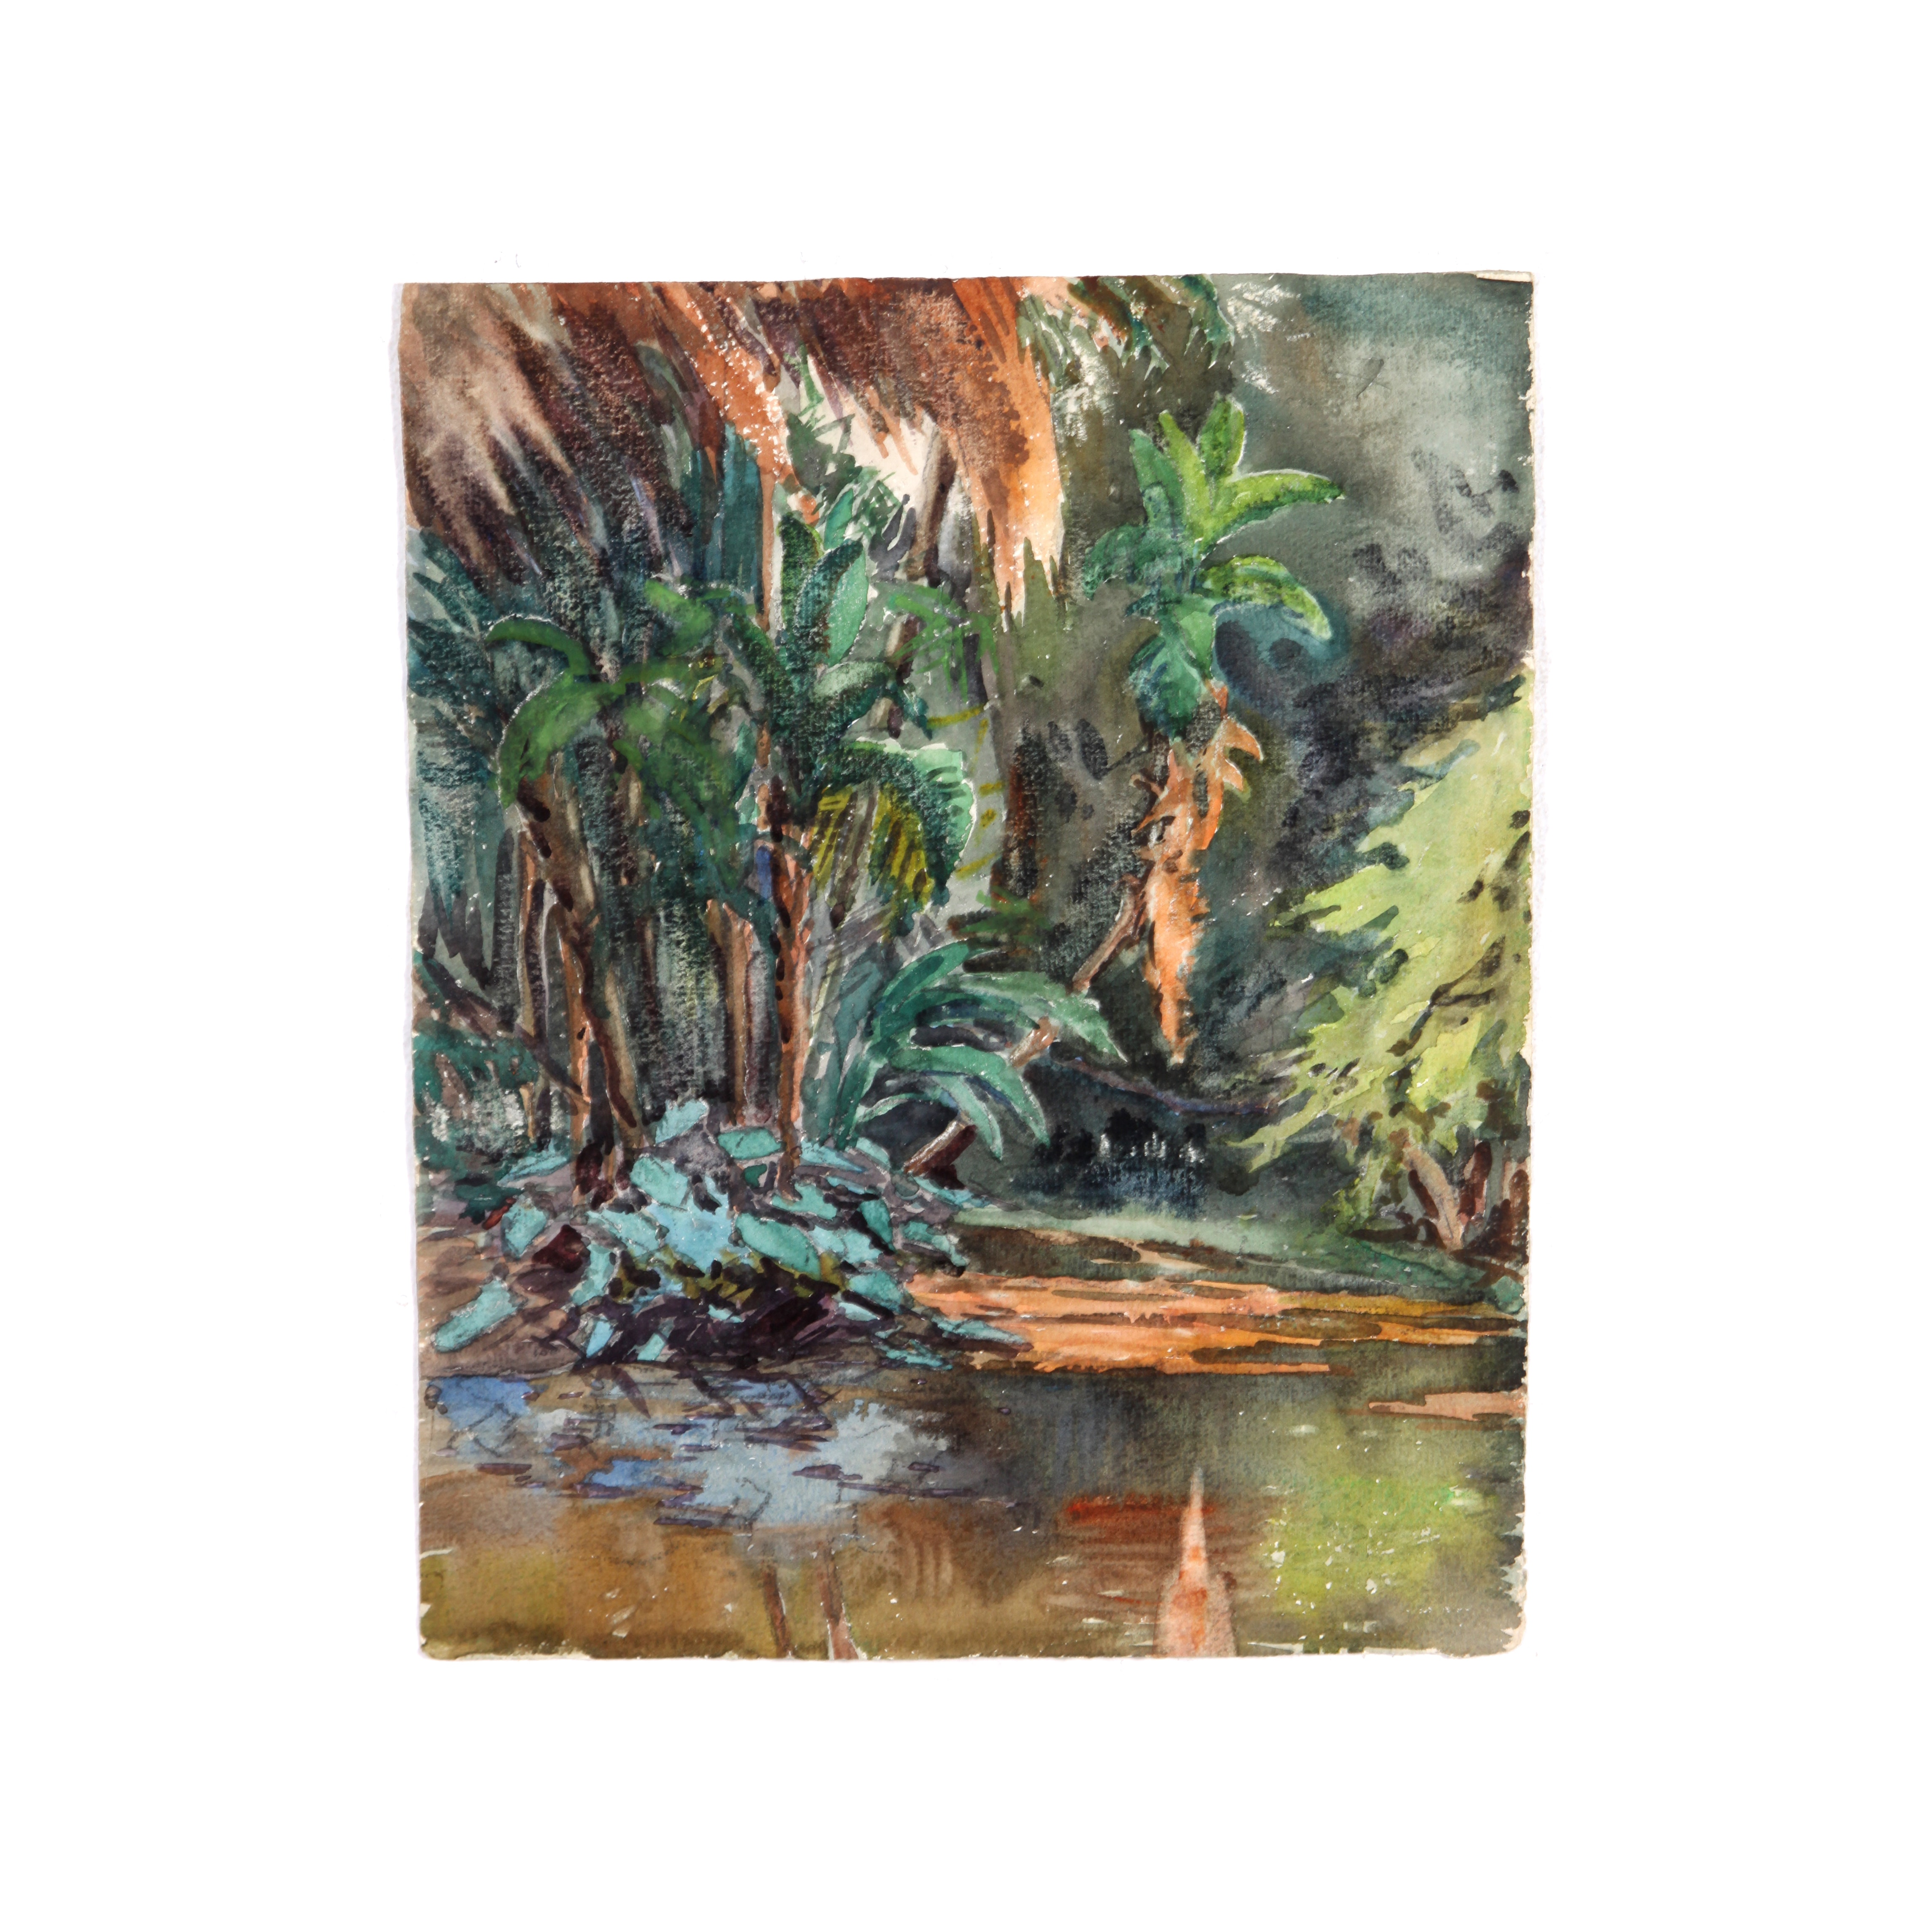 Colonel Raoul Monory c. 1930s Forest in Watercolor